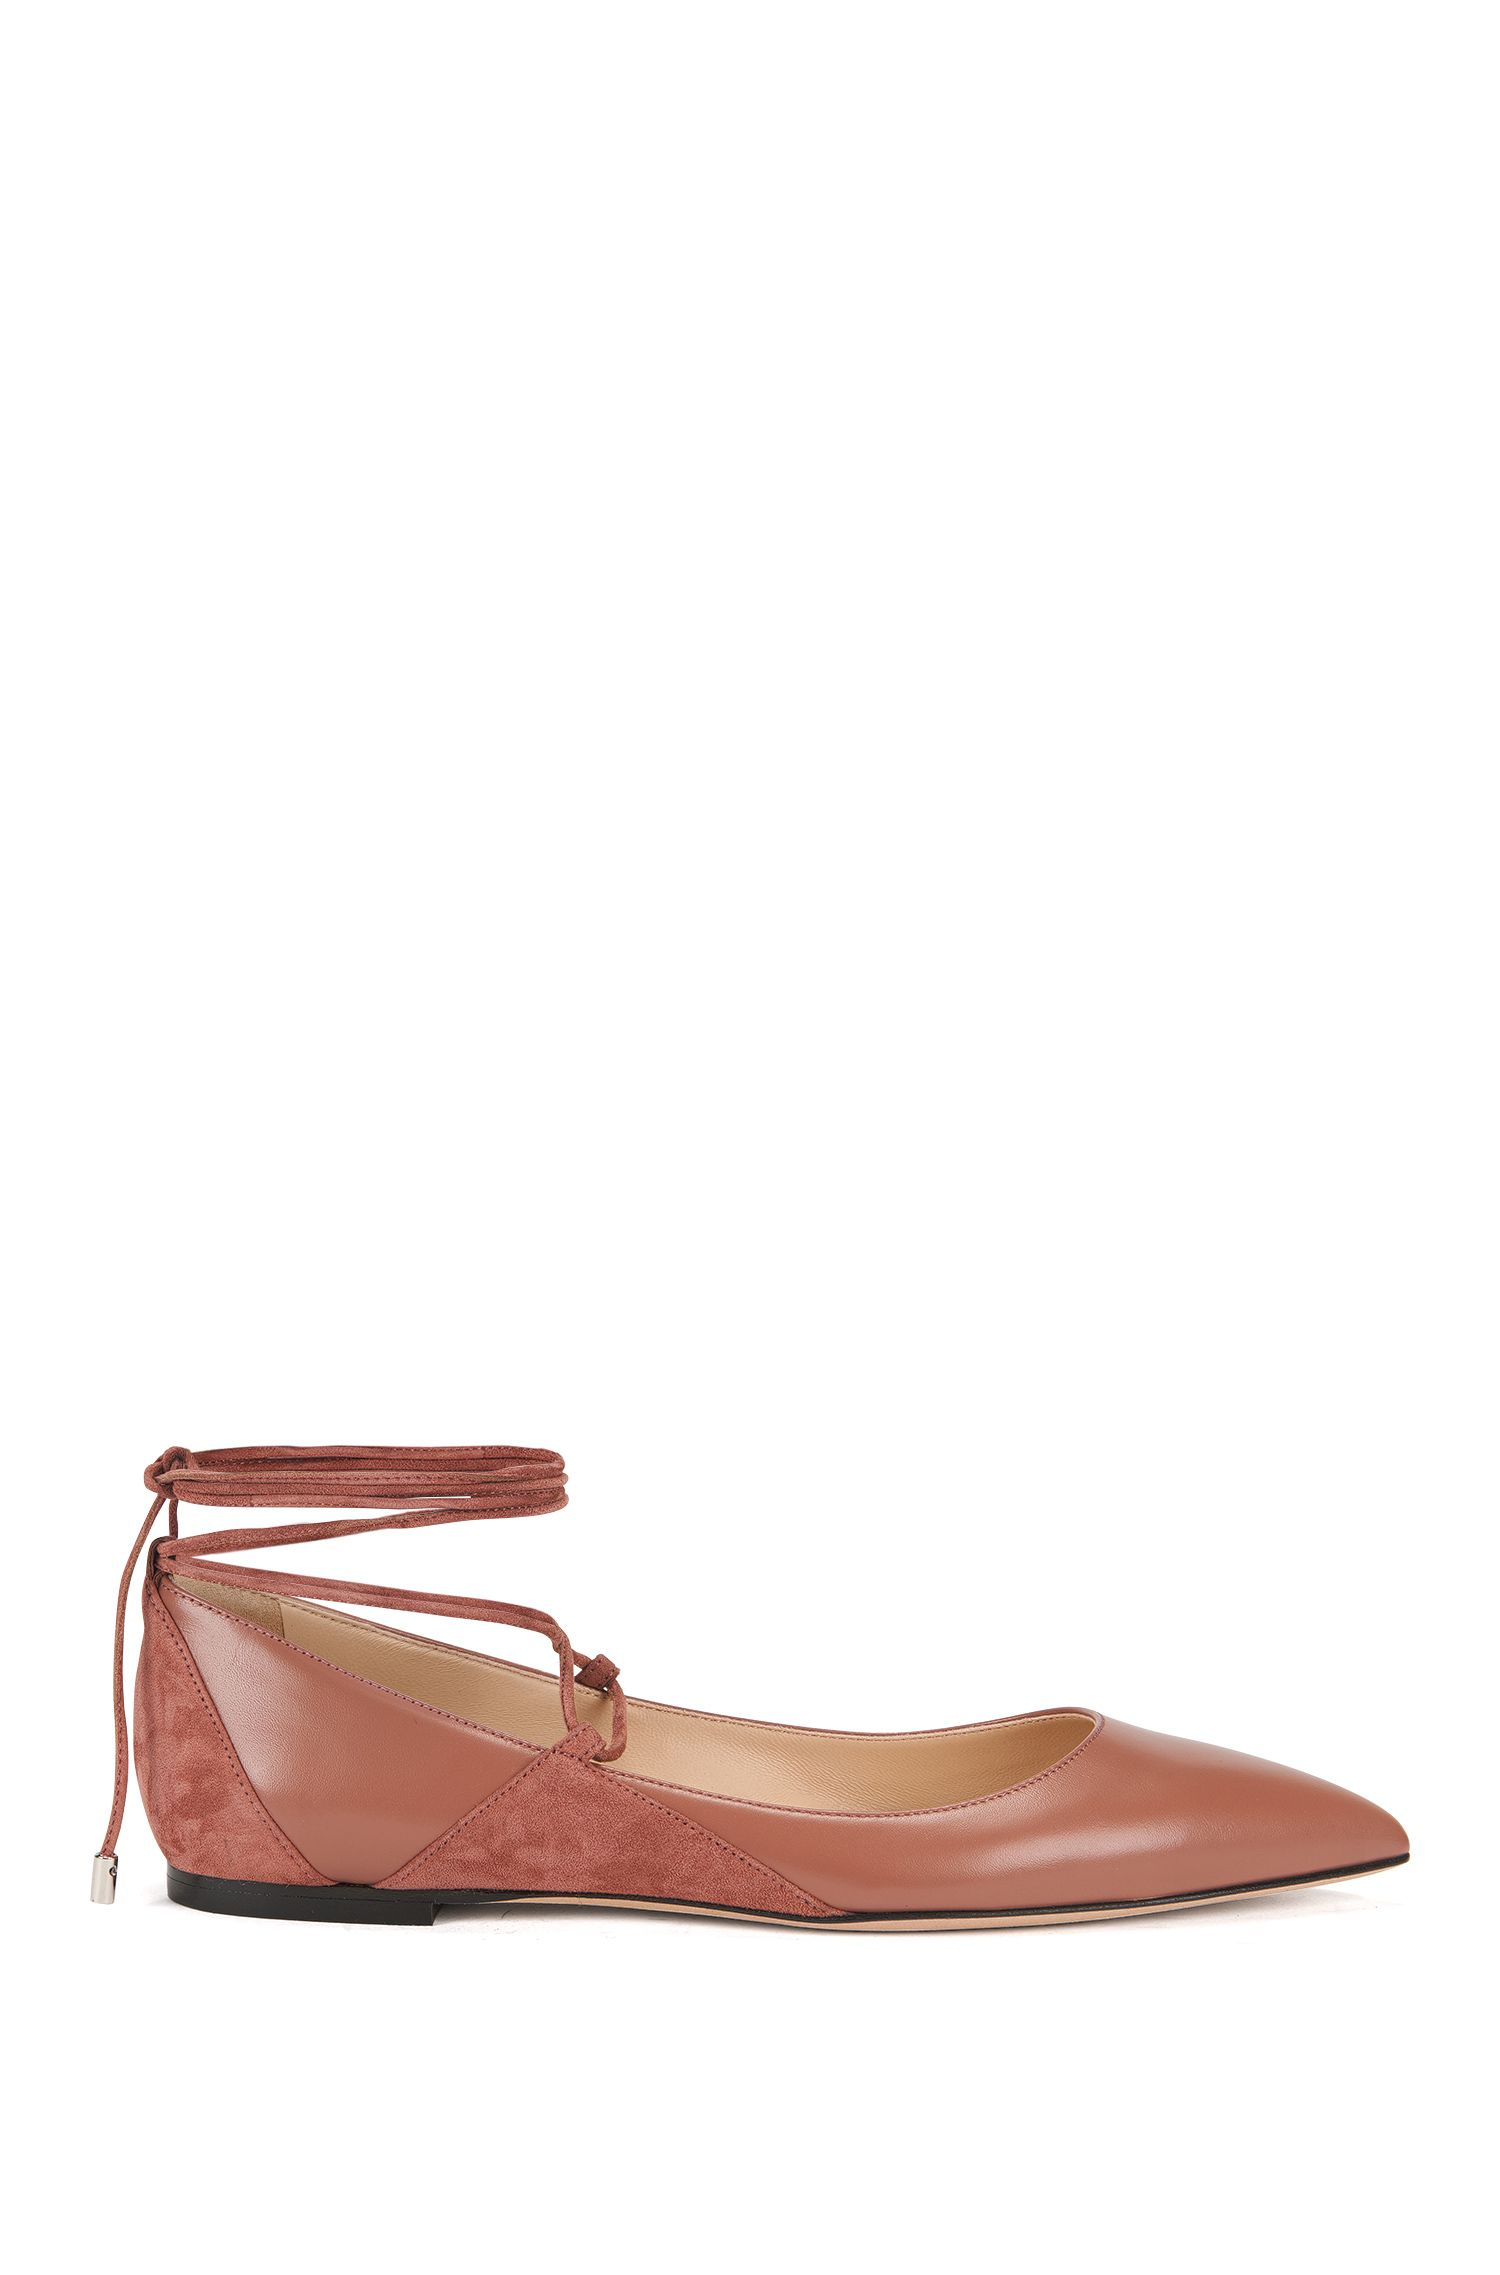 Ballerina flats in leather with lace-up detail